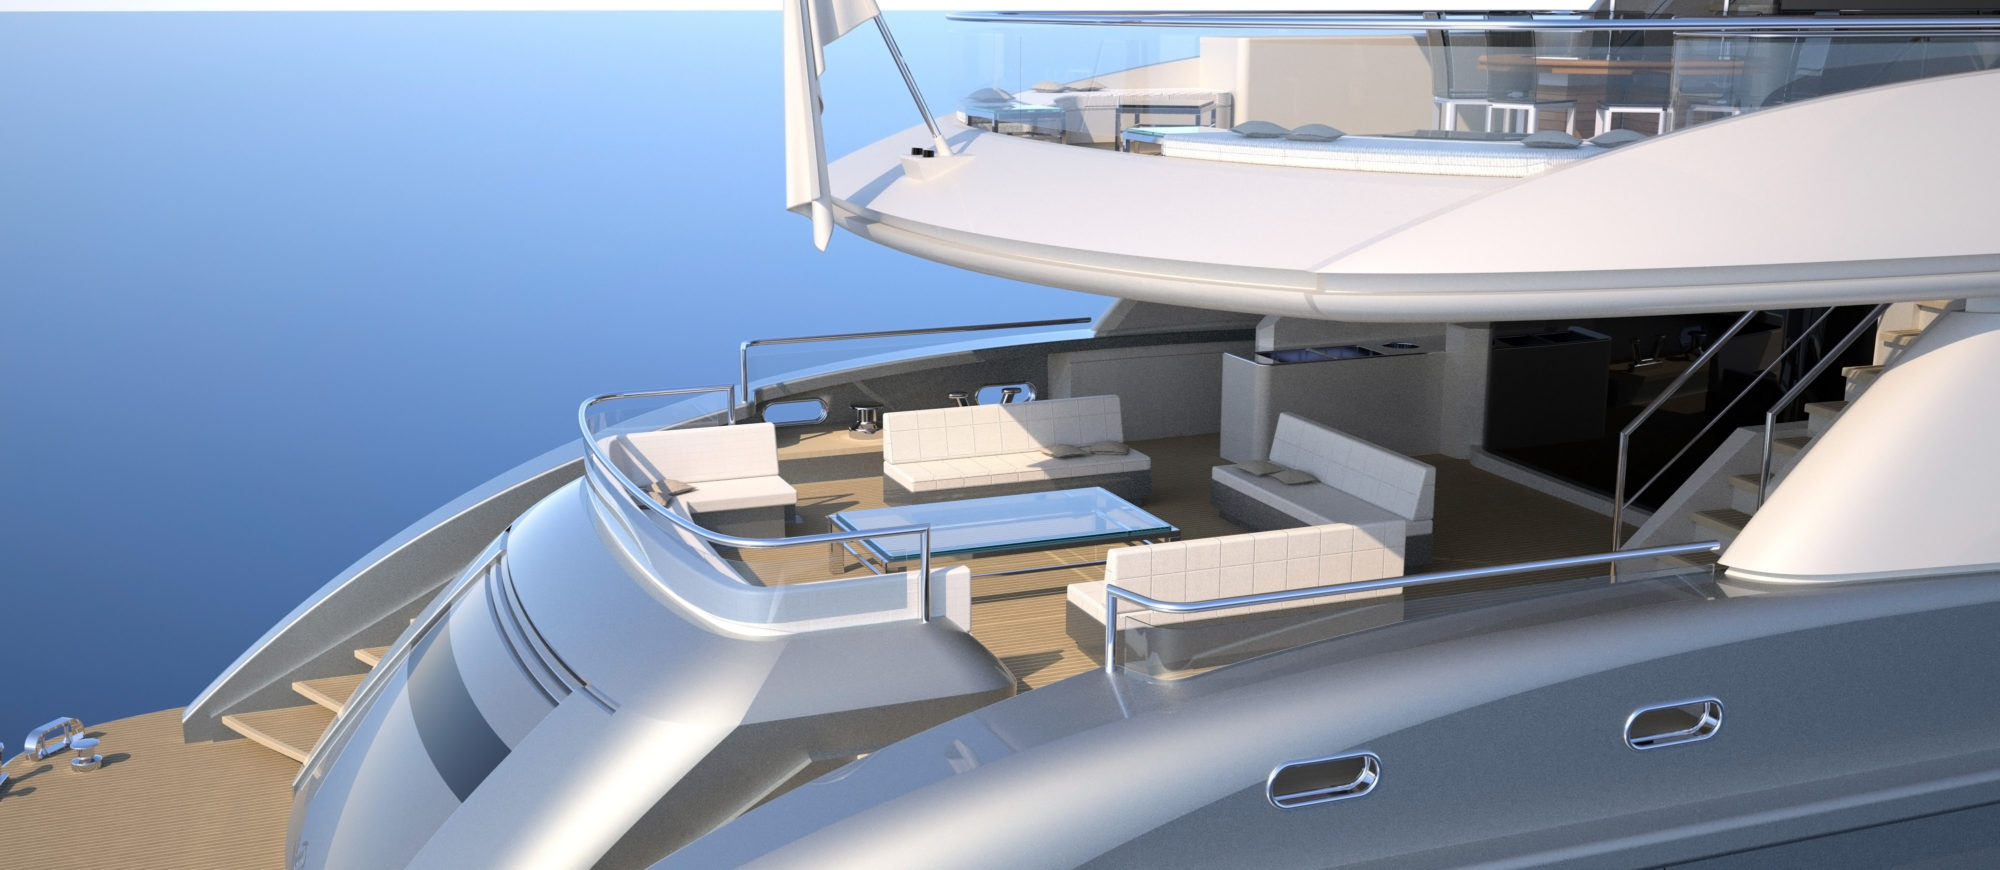 Conrad C166 Superyacht Concept Vallicelli Visualisation Main Deck 2